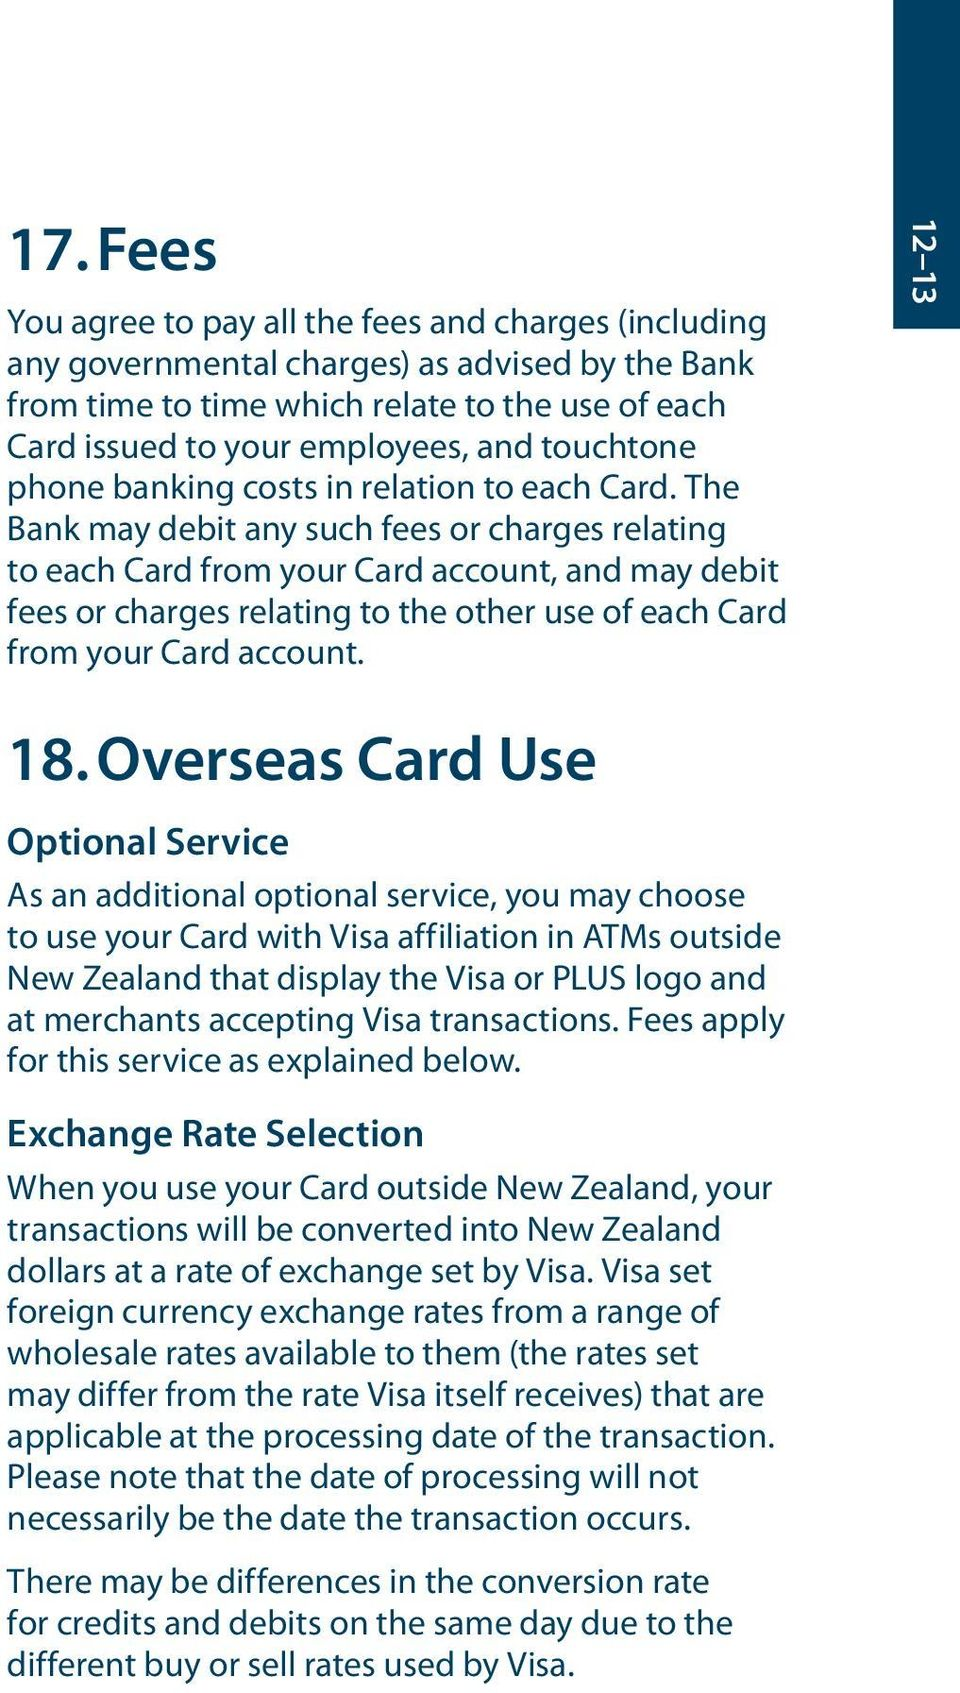 The Bank may debit any such fees or charges relating to each Card from your Card account, and may debit fees or charges relating to the other use of each Card from your Card account. 12 13 18.